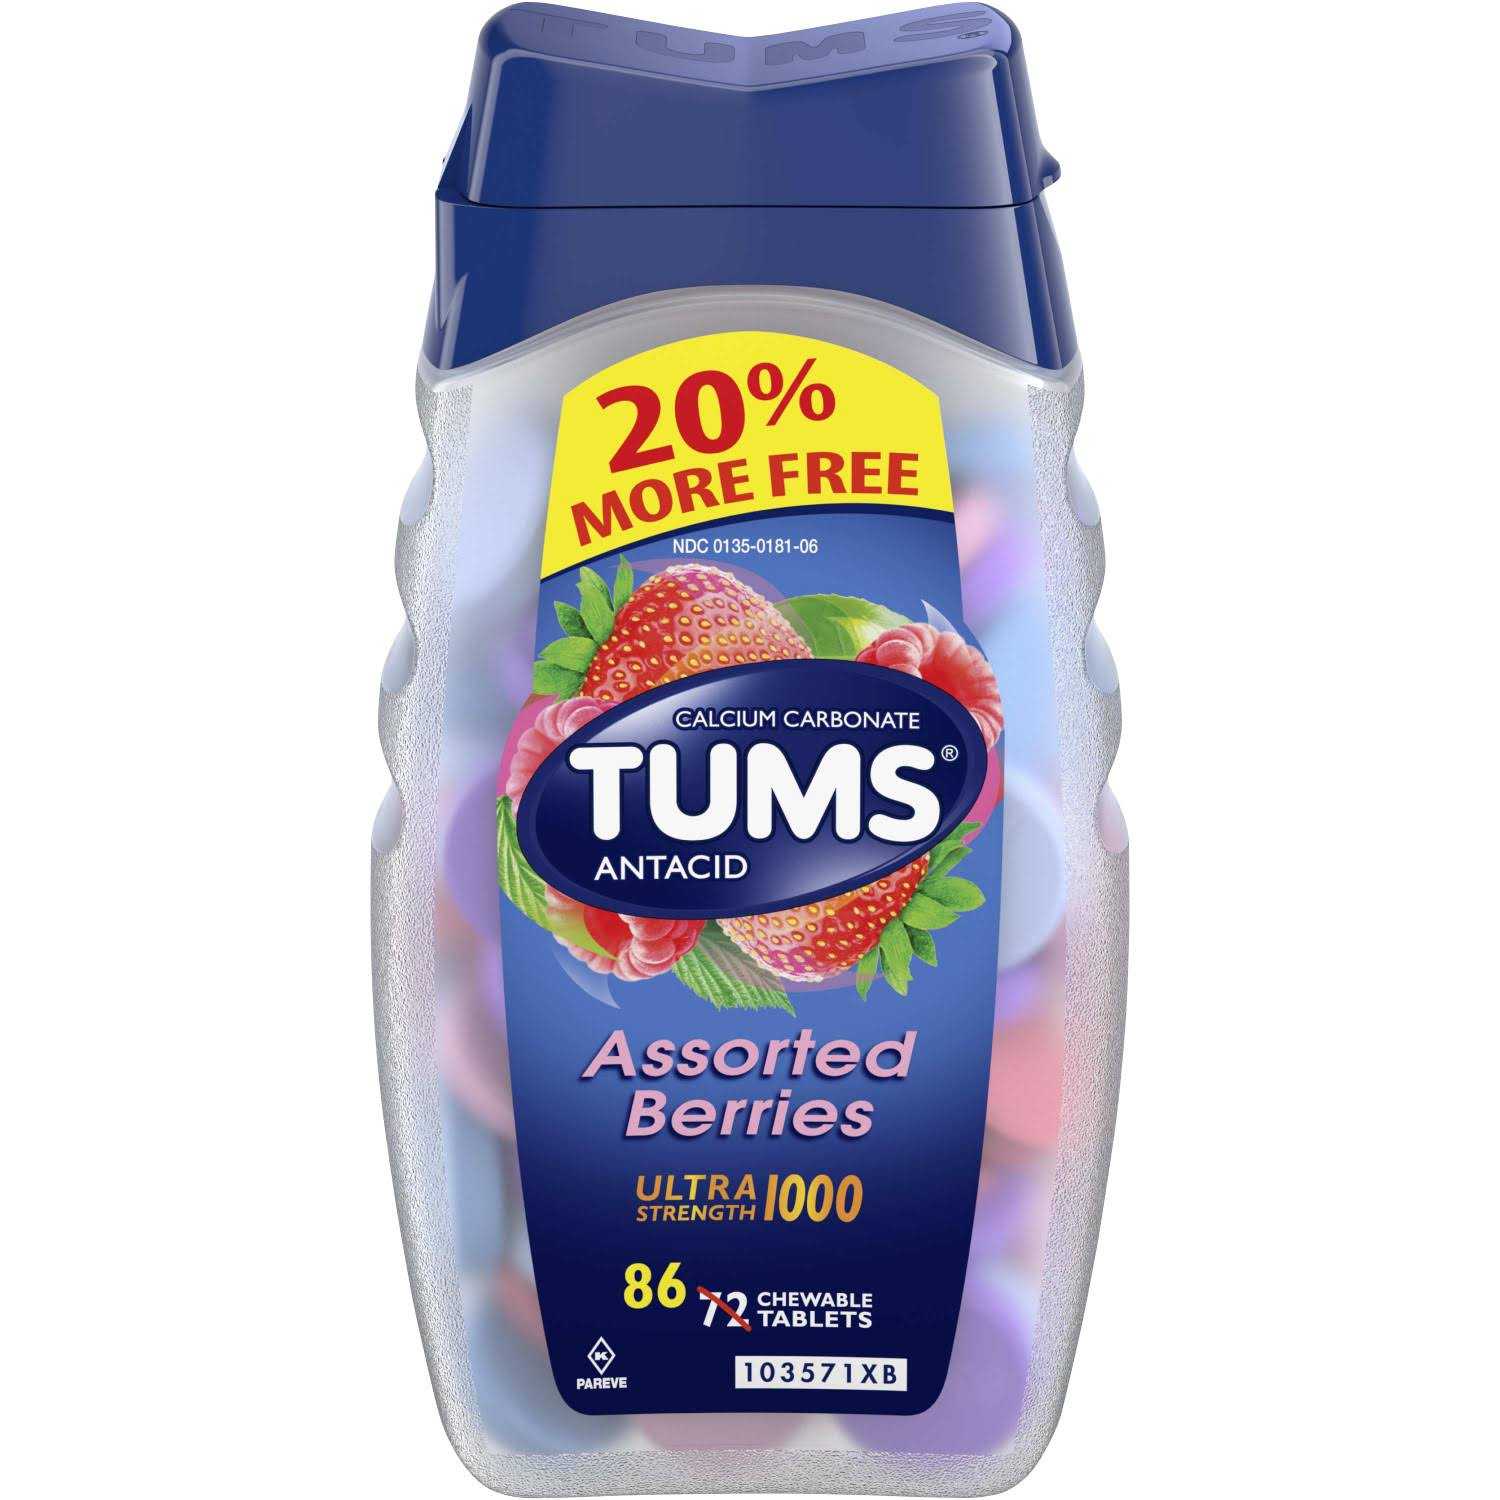 Tums Antacid Calcium Supplement - Ultra Strength 1000, Assorted Berries, 86 Chewable Tablets